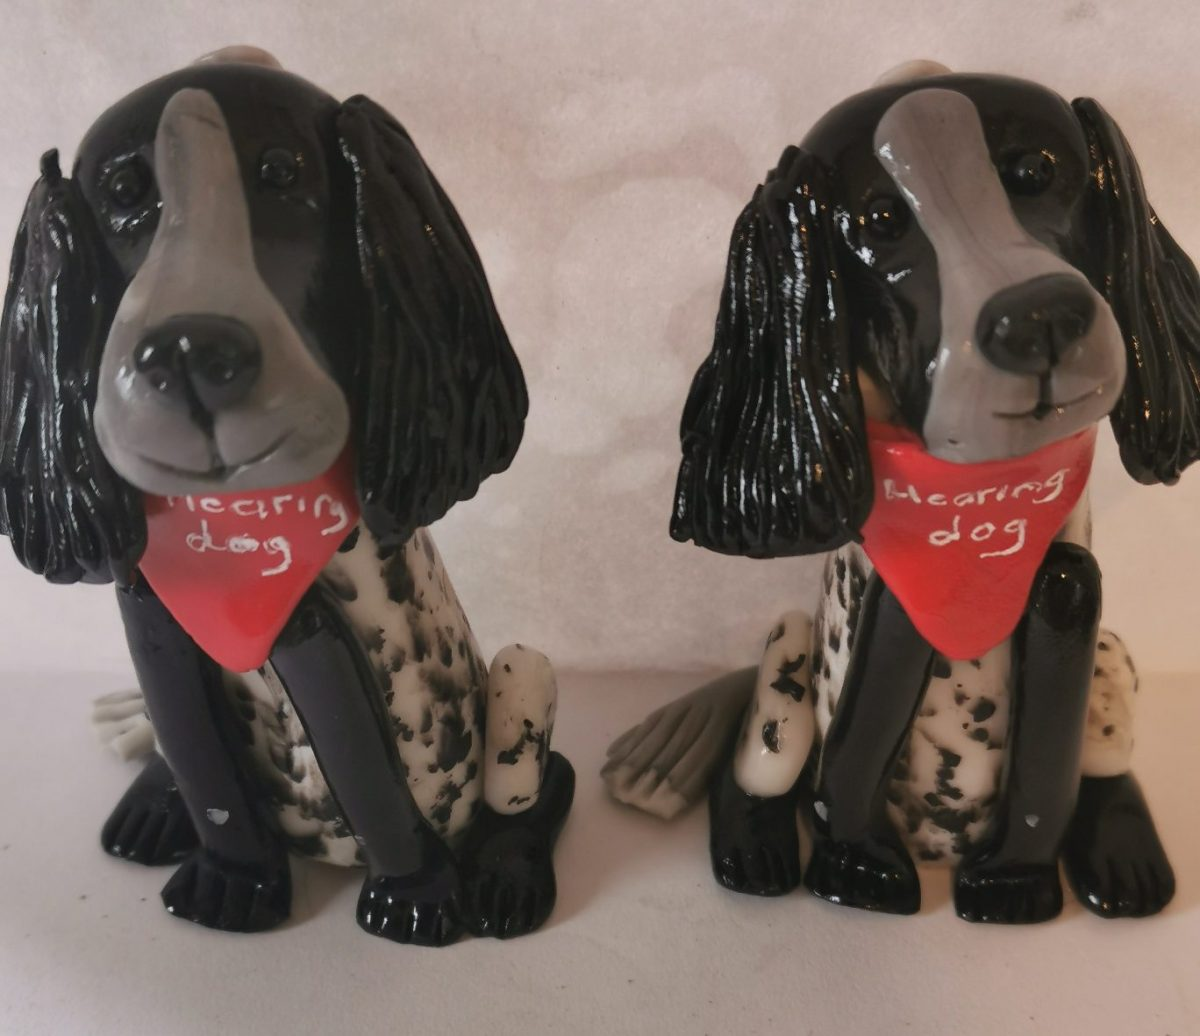 Clay hearing dogs with red bandanas